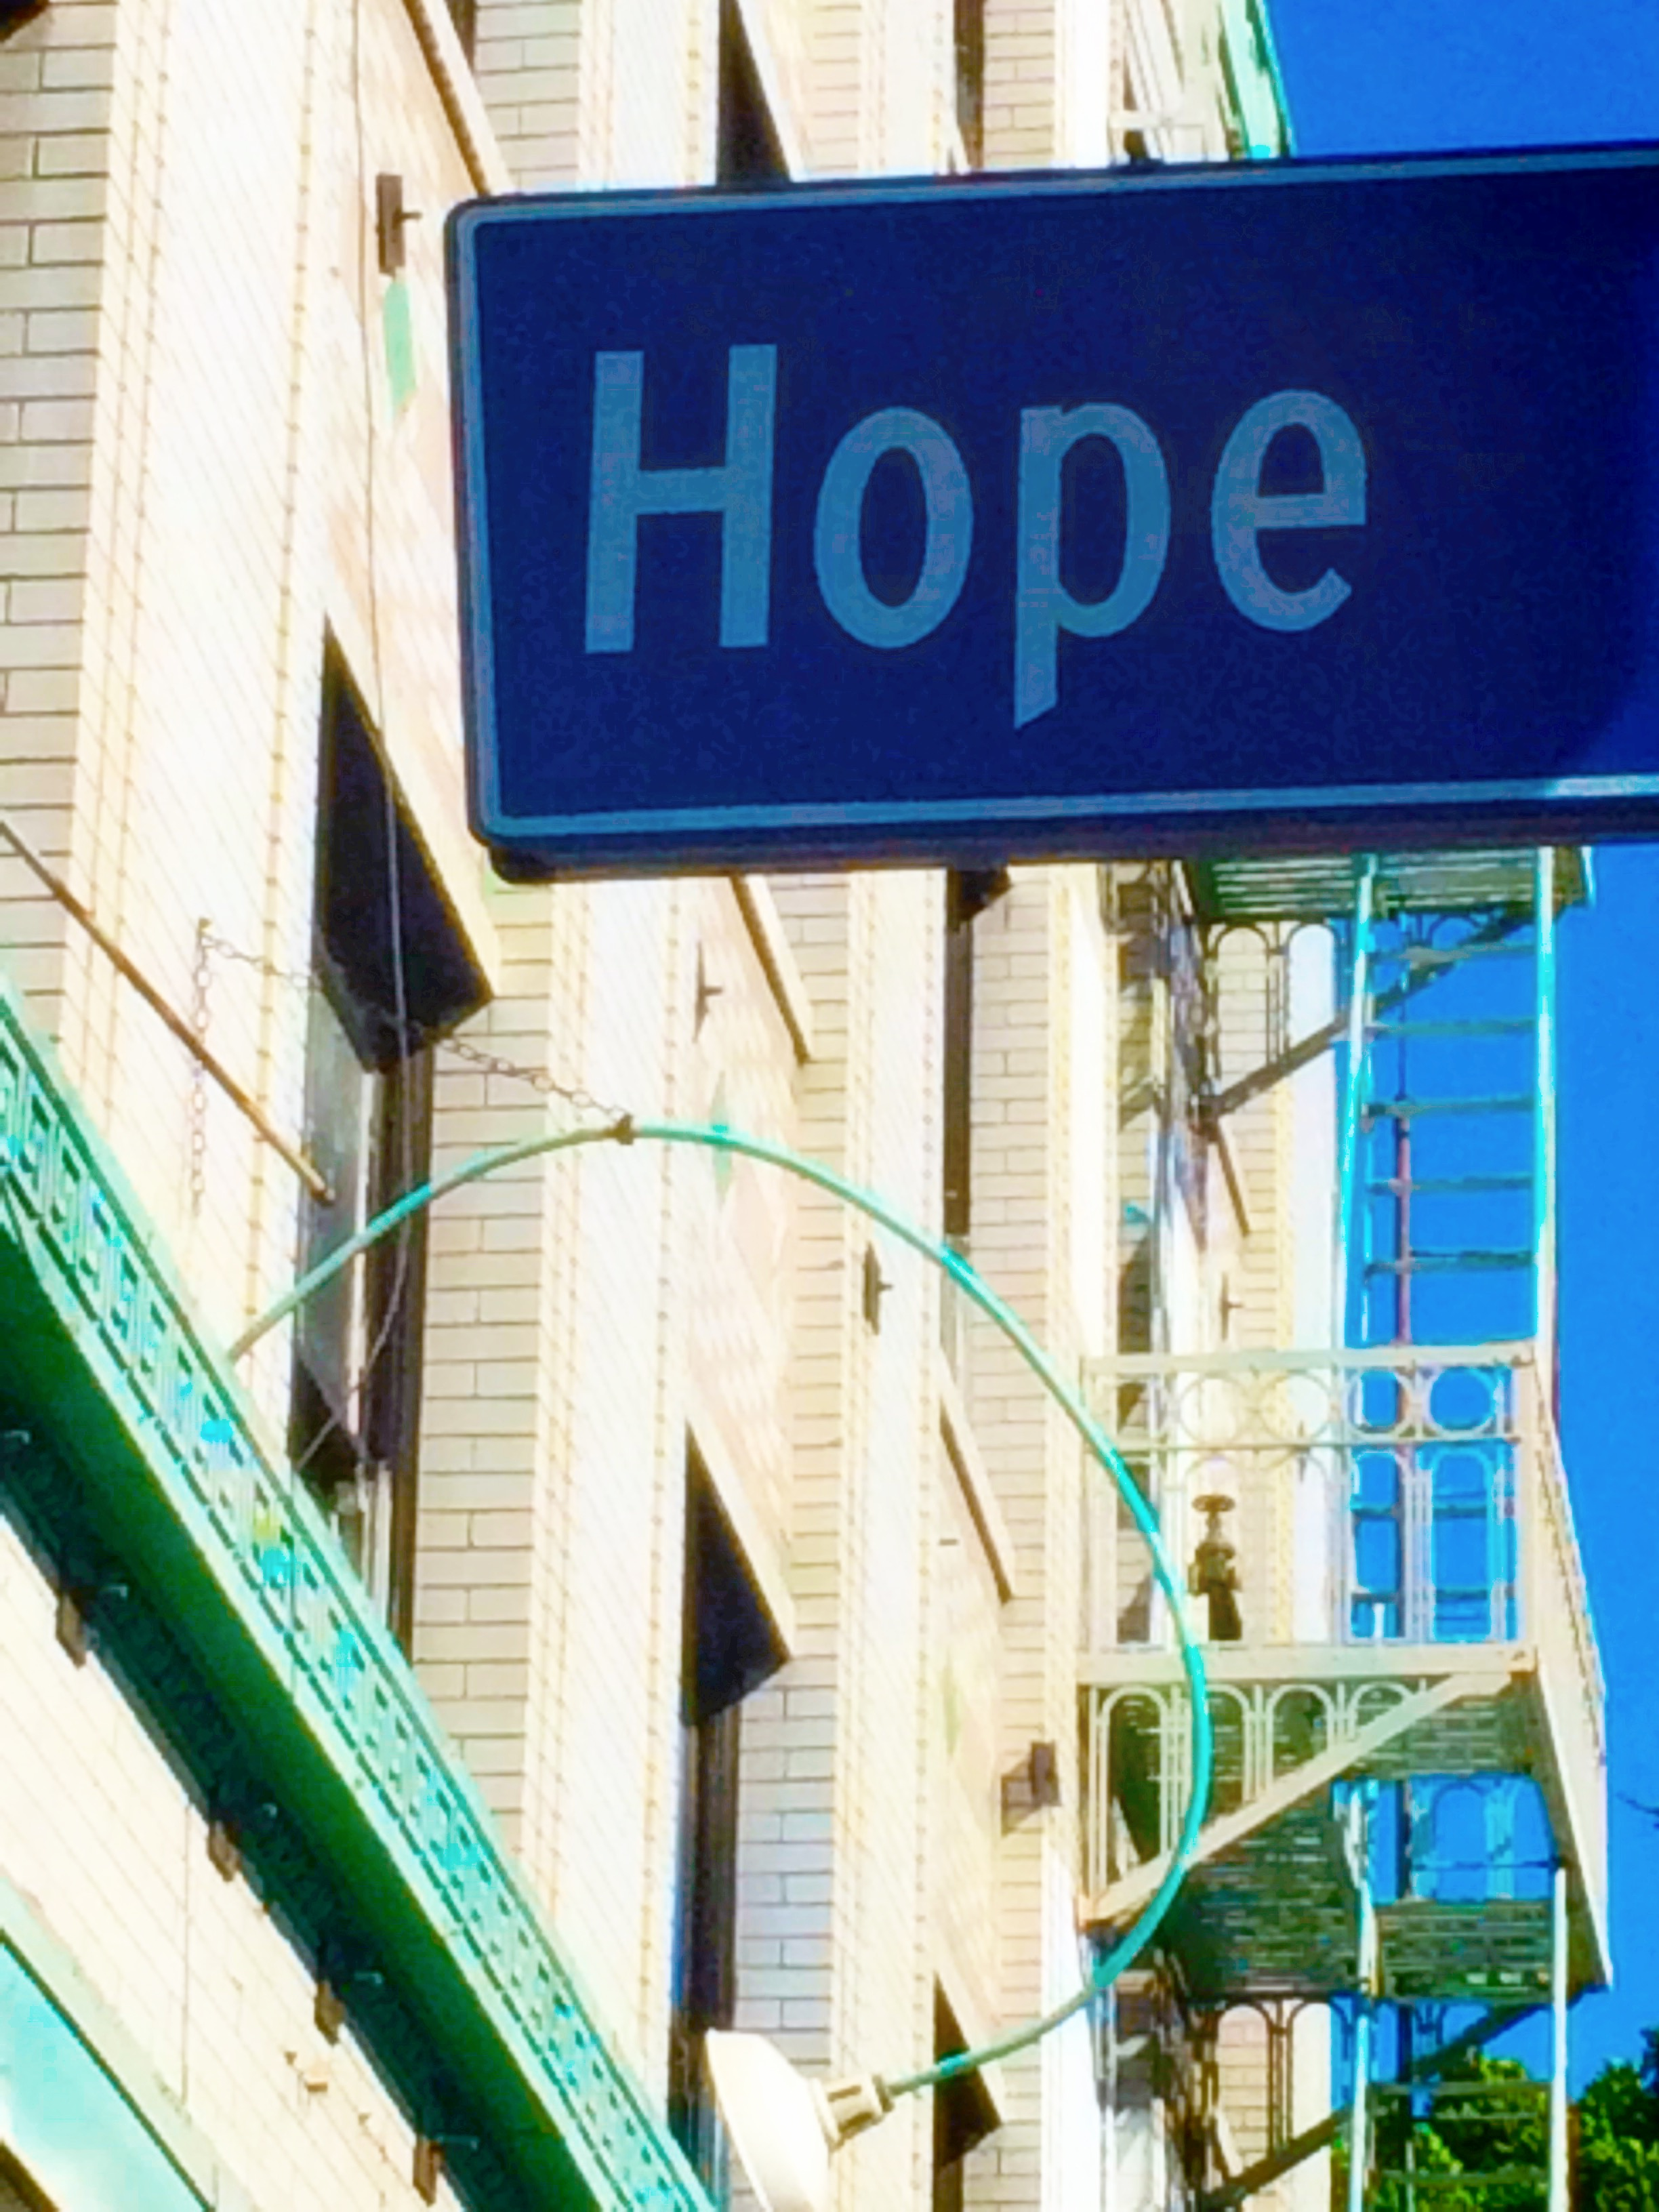 Between Hope and Flower